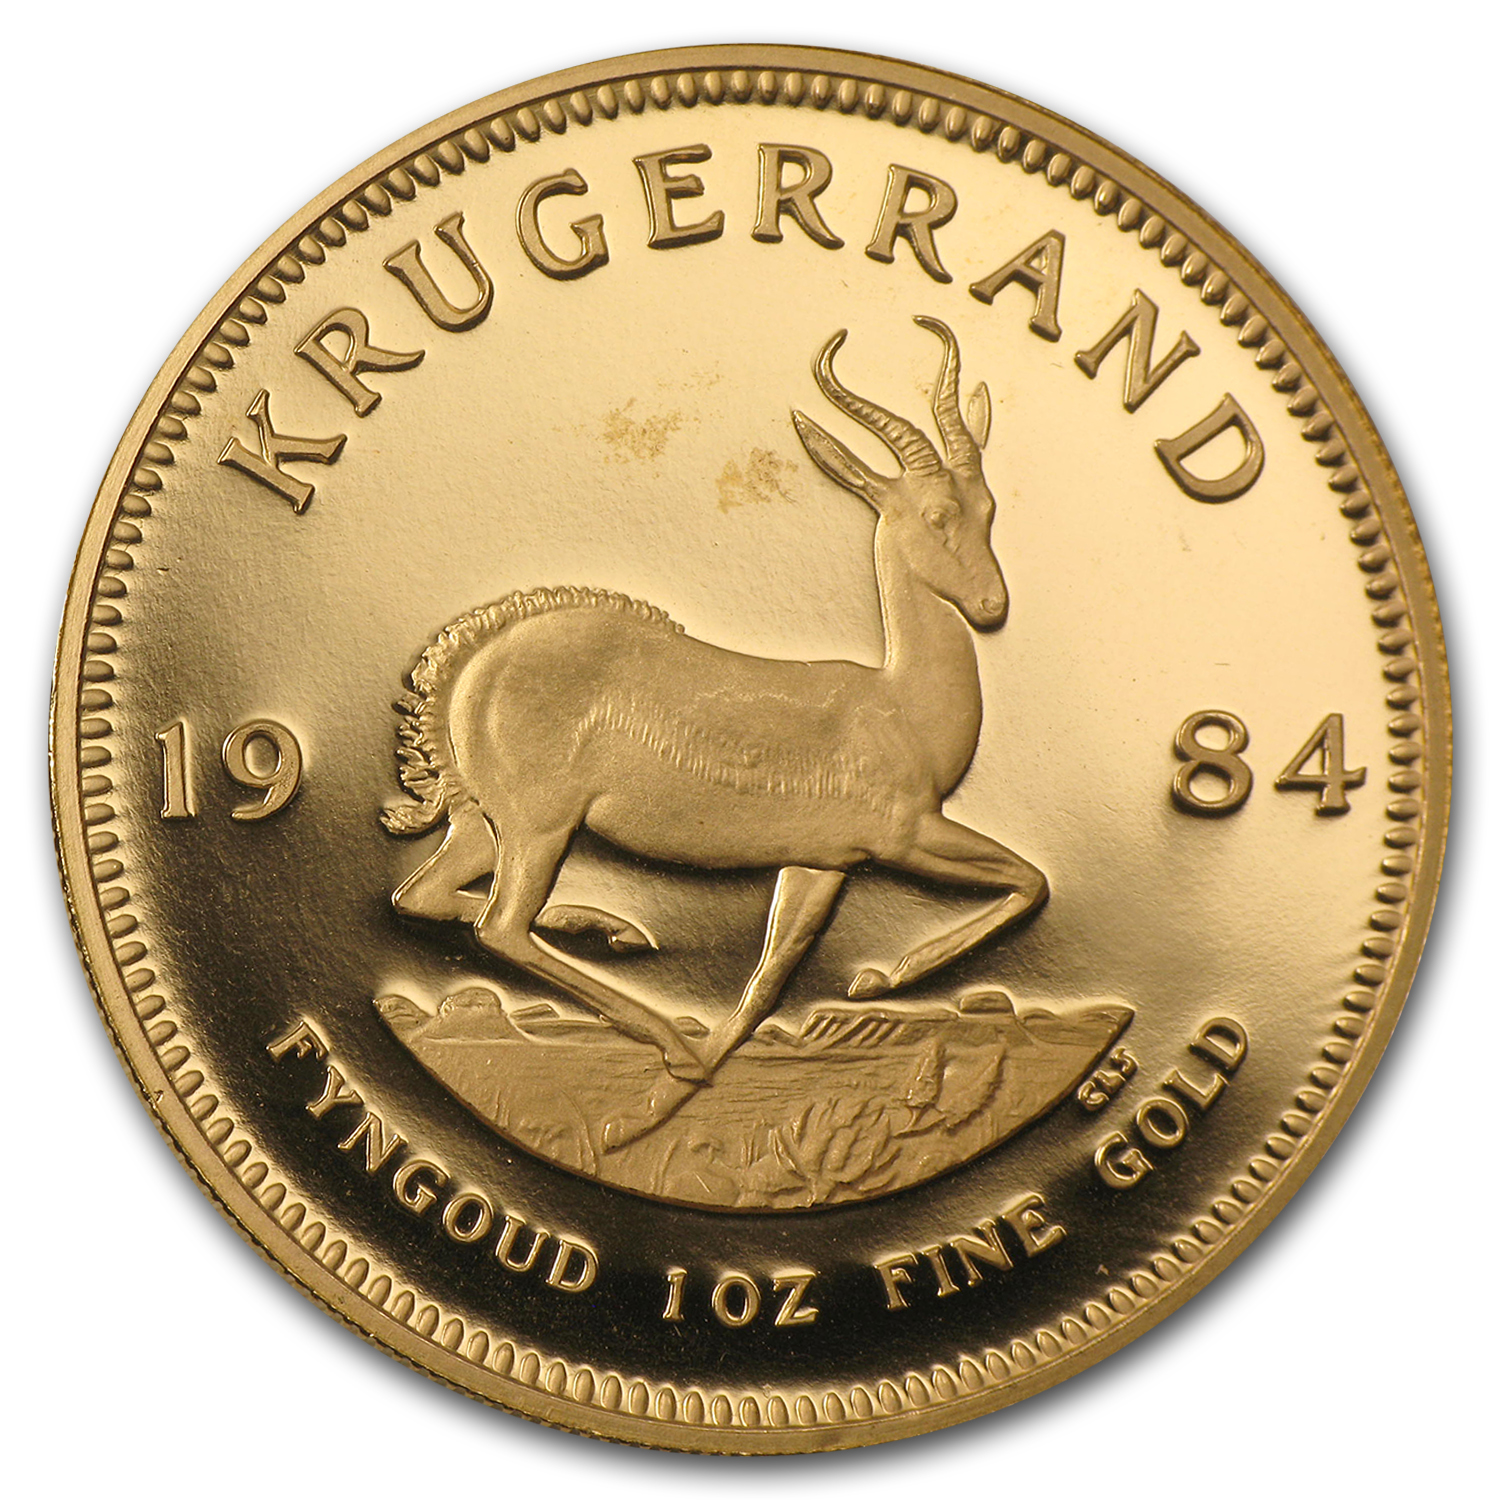 1984 South Africa 1 oz Proof Gold Krugerrand